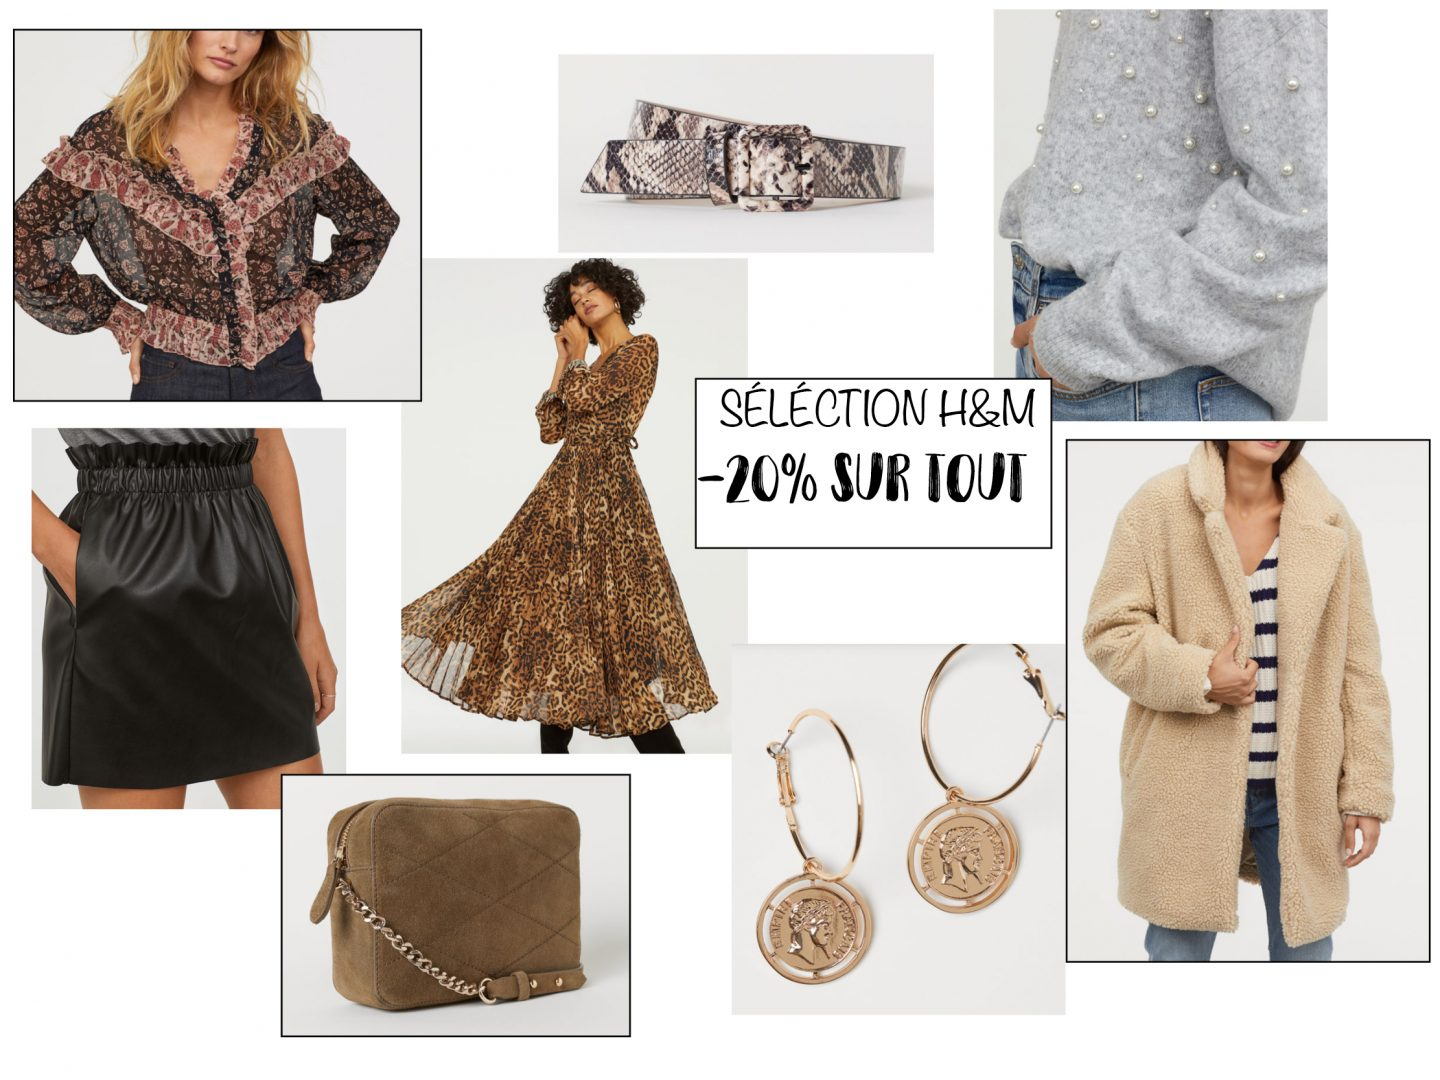 -20% SUR H&M #SELECTION